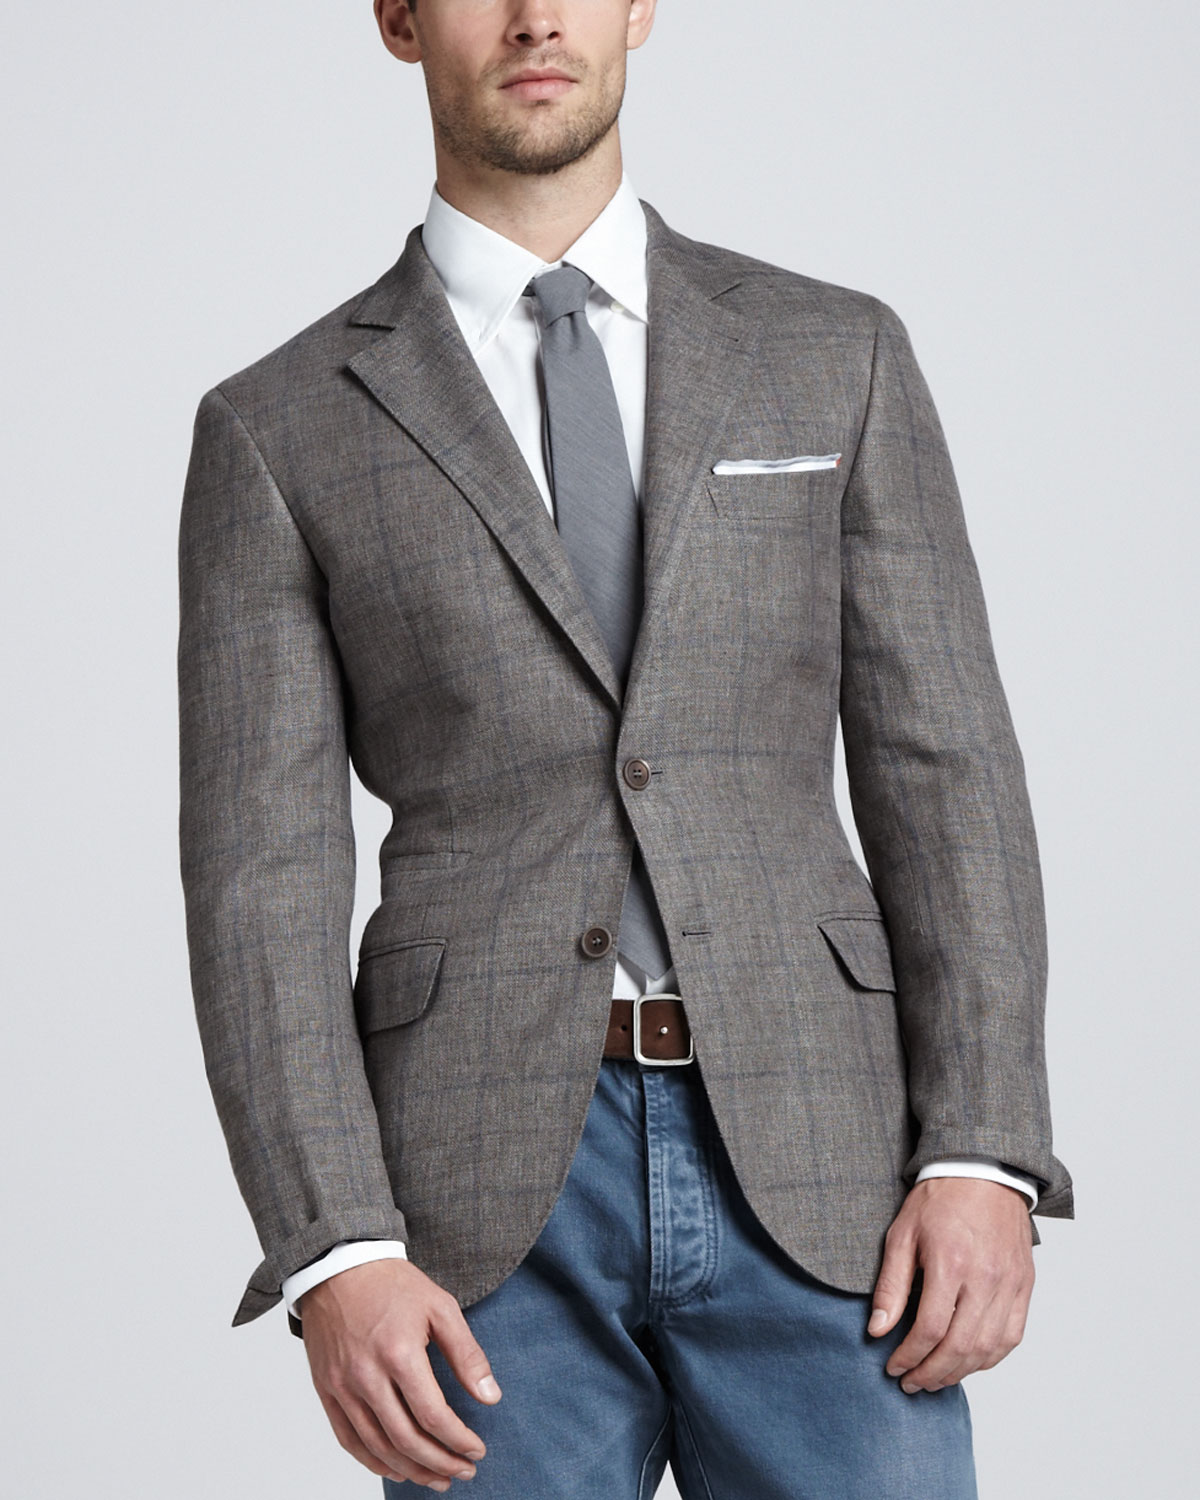 Cheap Popular Professional SUITS AND JACKETS - Blazers Brunello Cucinelli Clearance Comfortable Hot Sale Cheap Online HPu9l8a